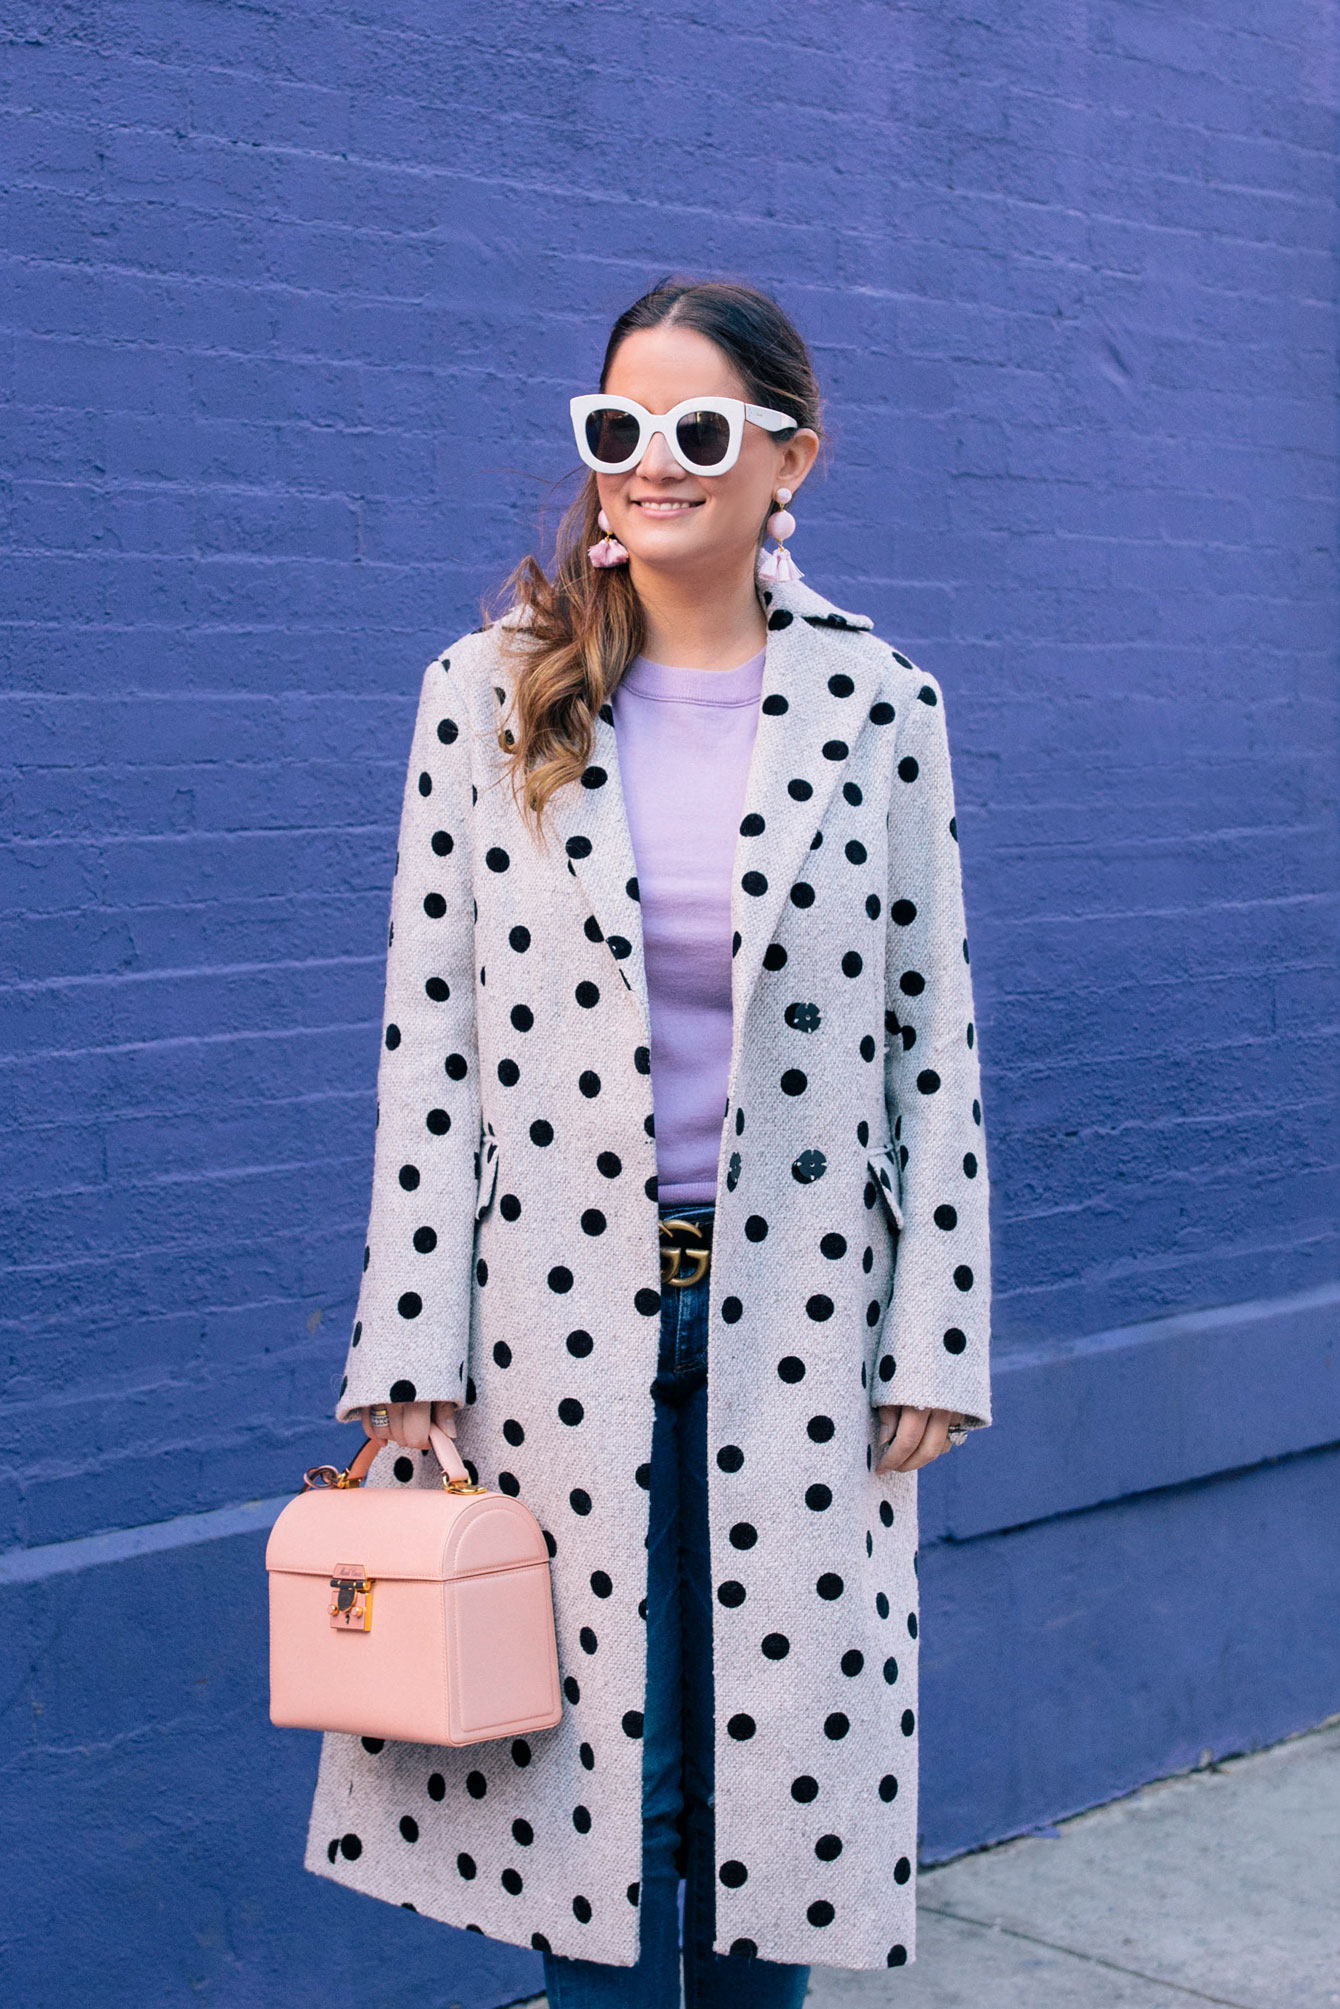 ASOS Black Polka Dot Coat